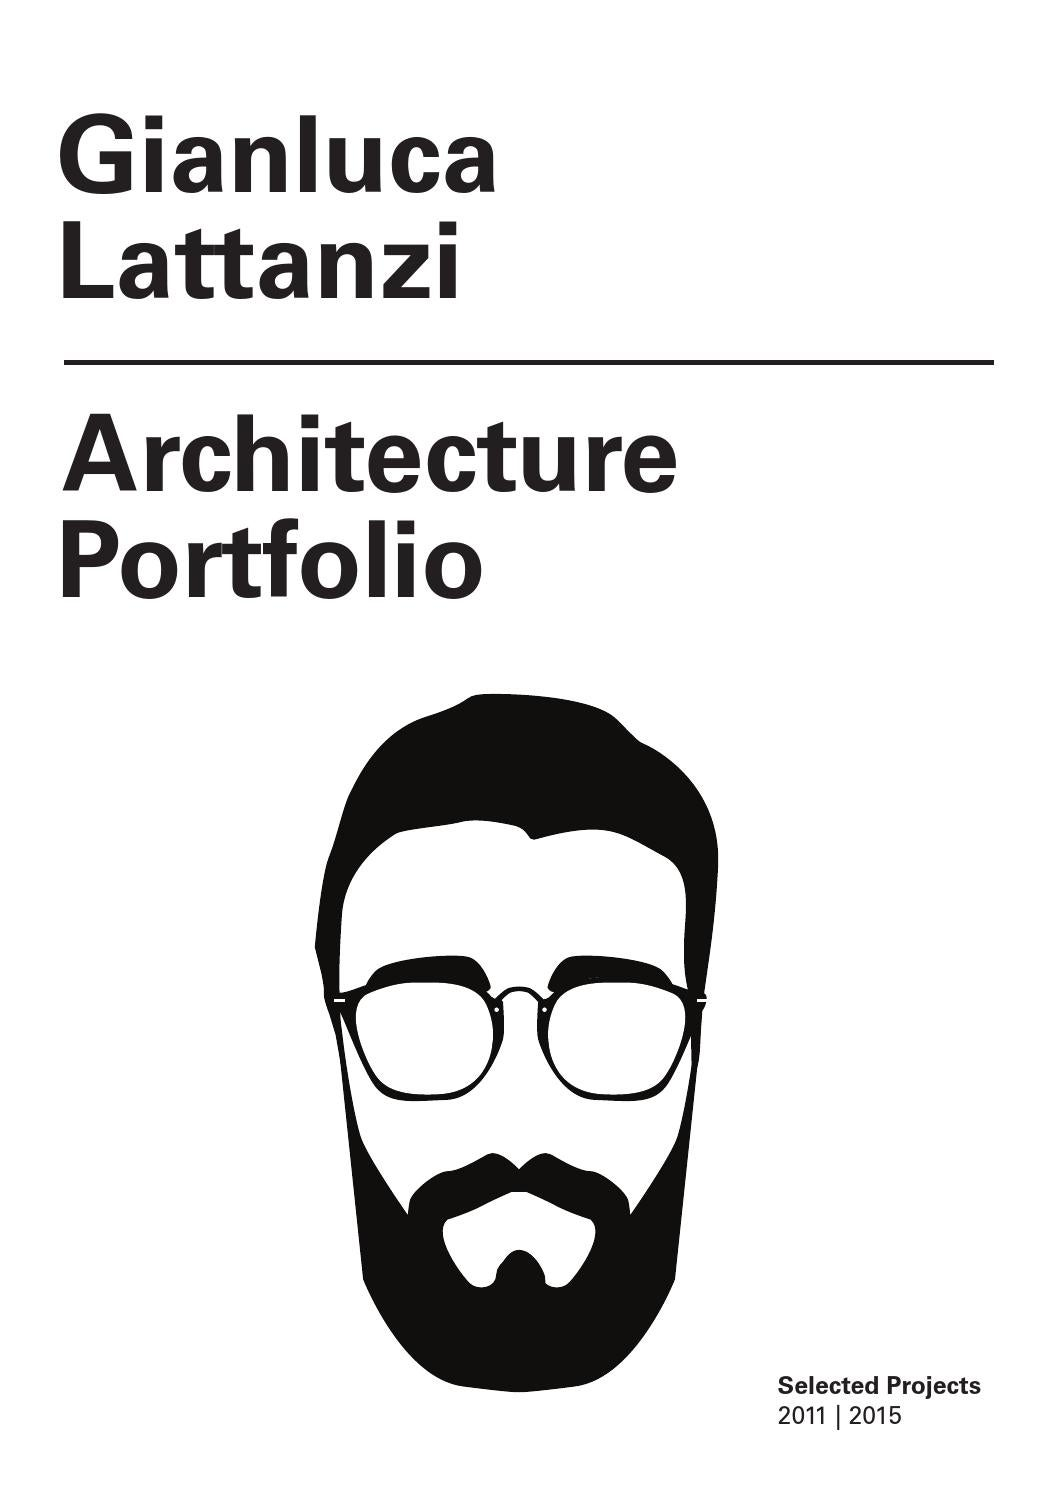 Gianluca Lattanzi Architecture Portfolio by Gianluca